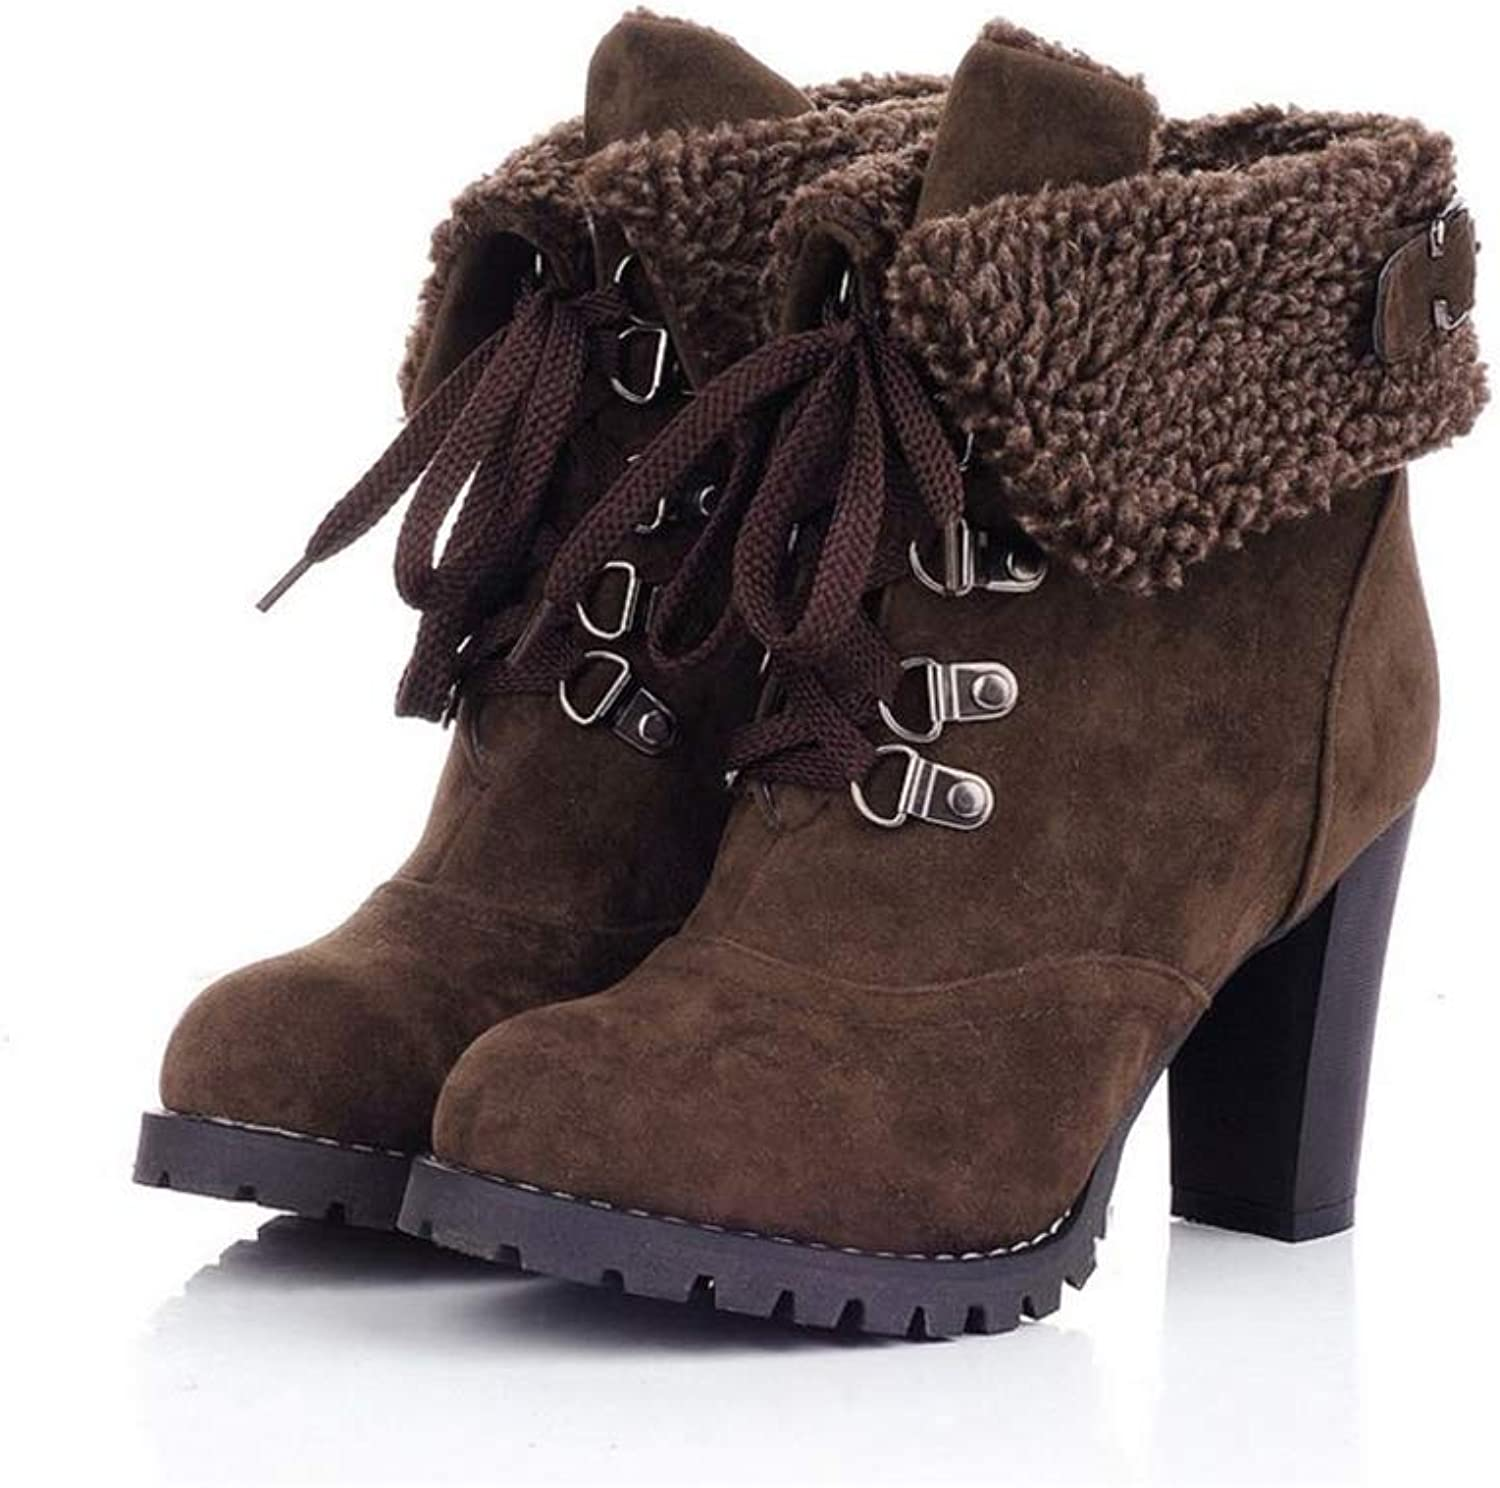 Excellent.c New Martin Boots Fashion Women's Boots England Wind Low Boots